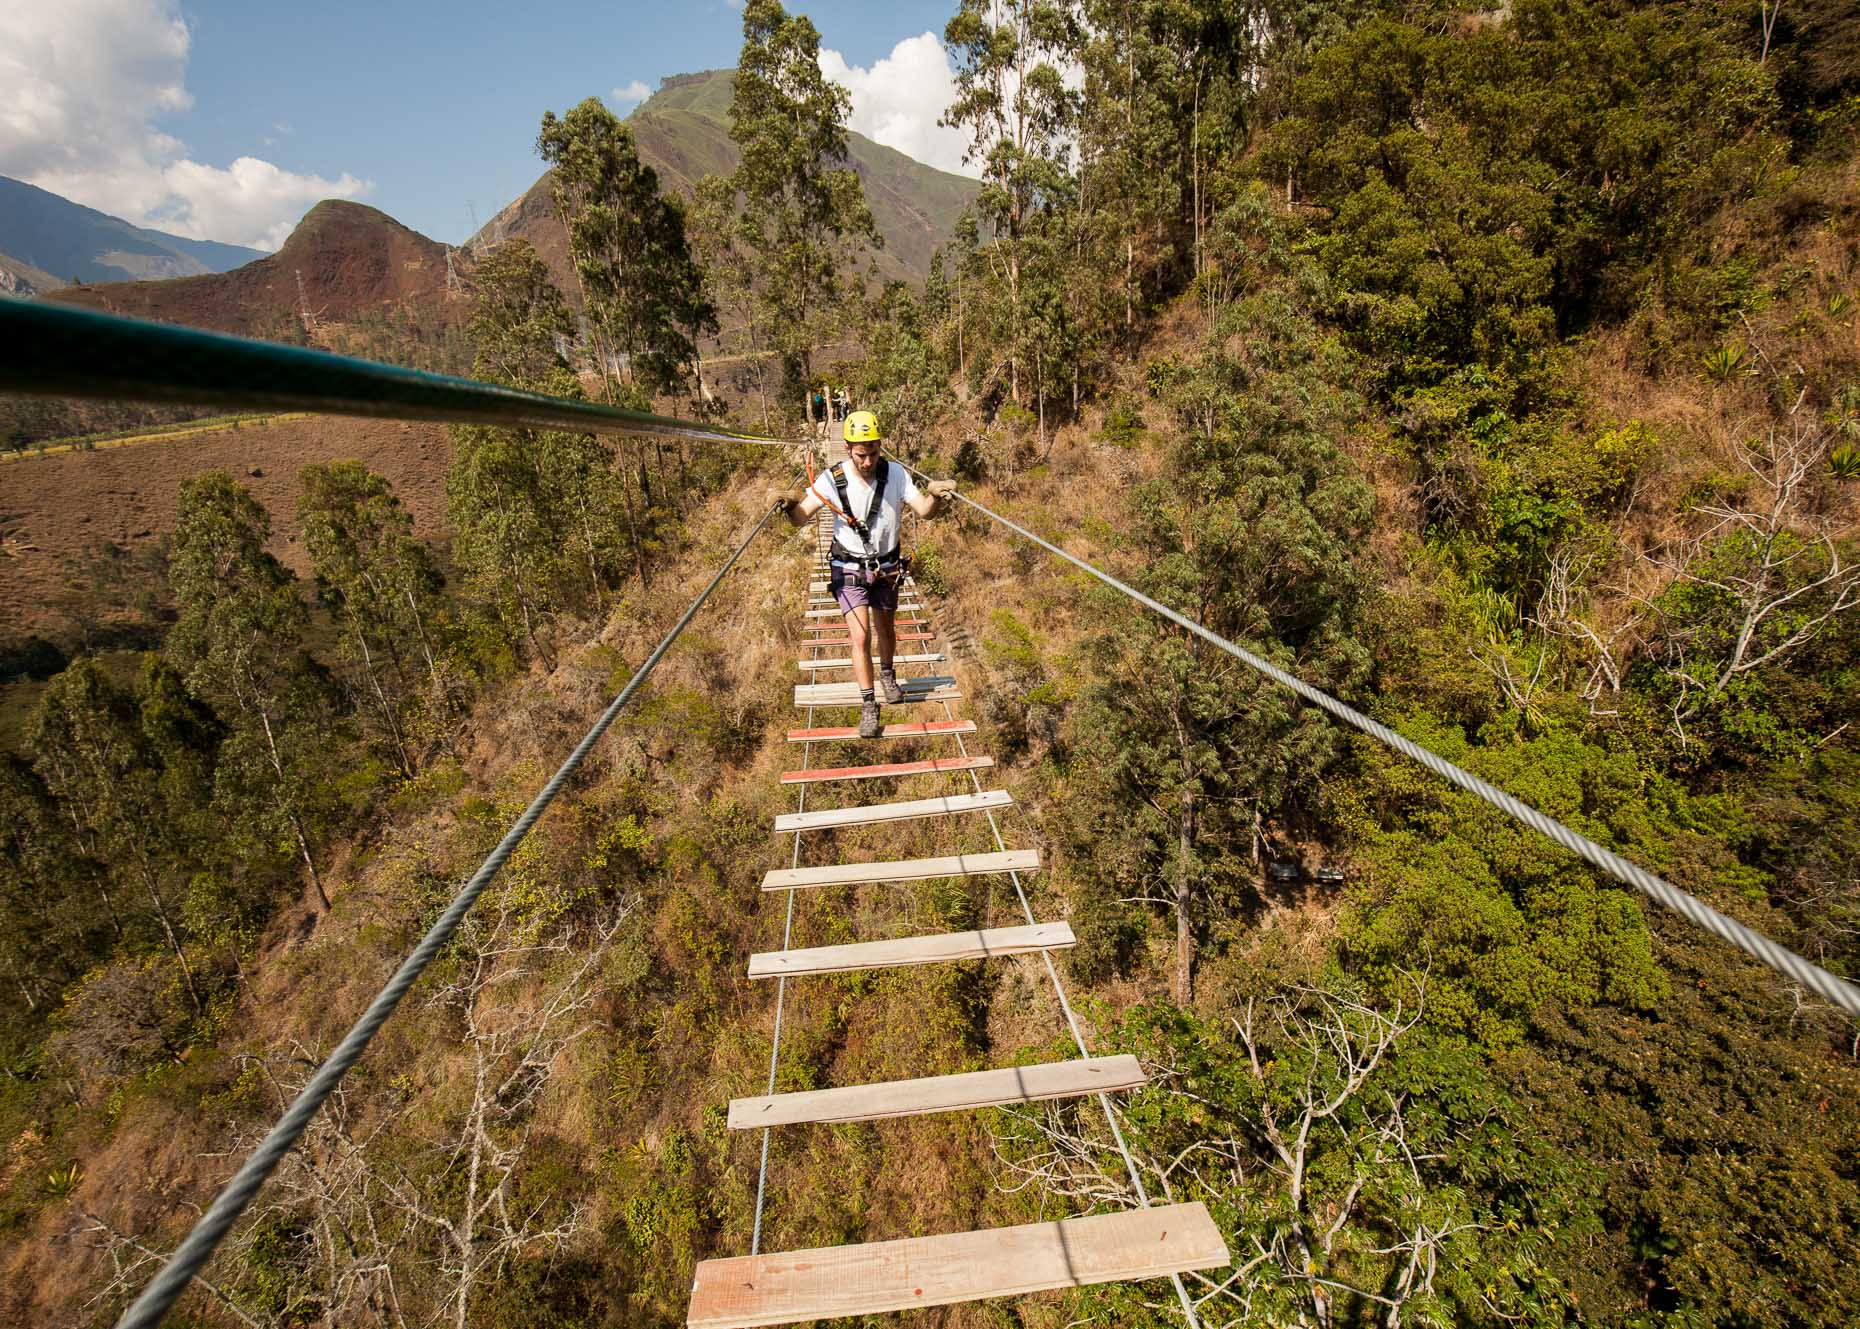 Suspension Bridge, Salkantay Trek, Peru